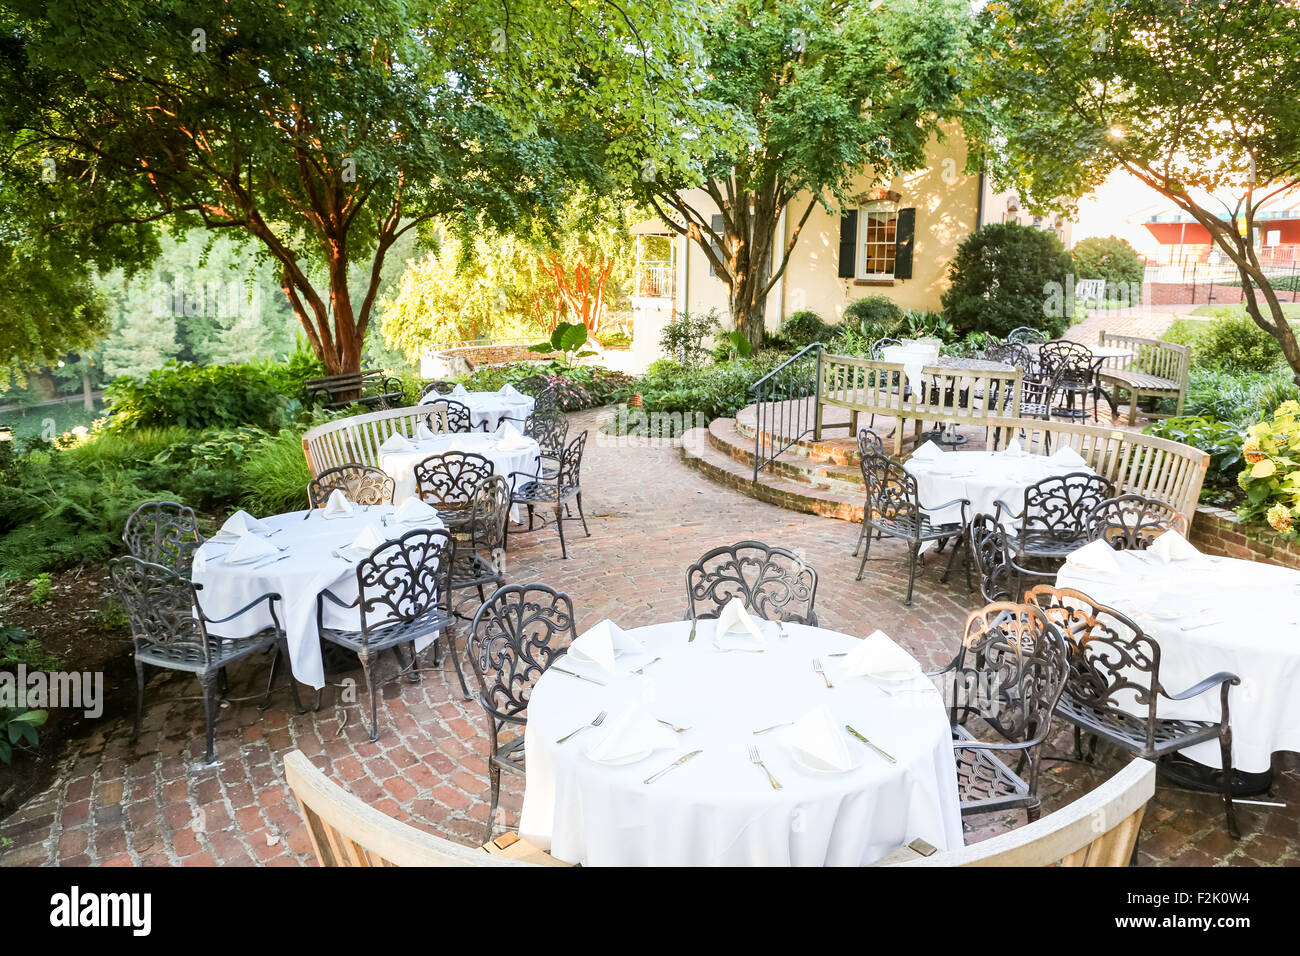 mary s at falls cottage restaurant outdoor dining along main street rh alamy com mary falls cottage greenville sc mary's at falls cottage greenville sc 29601